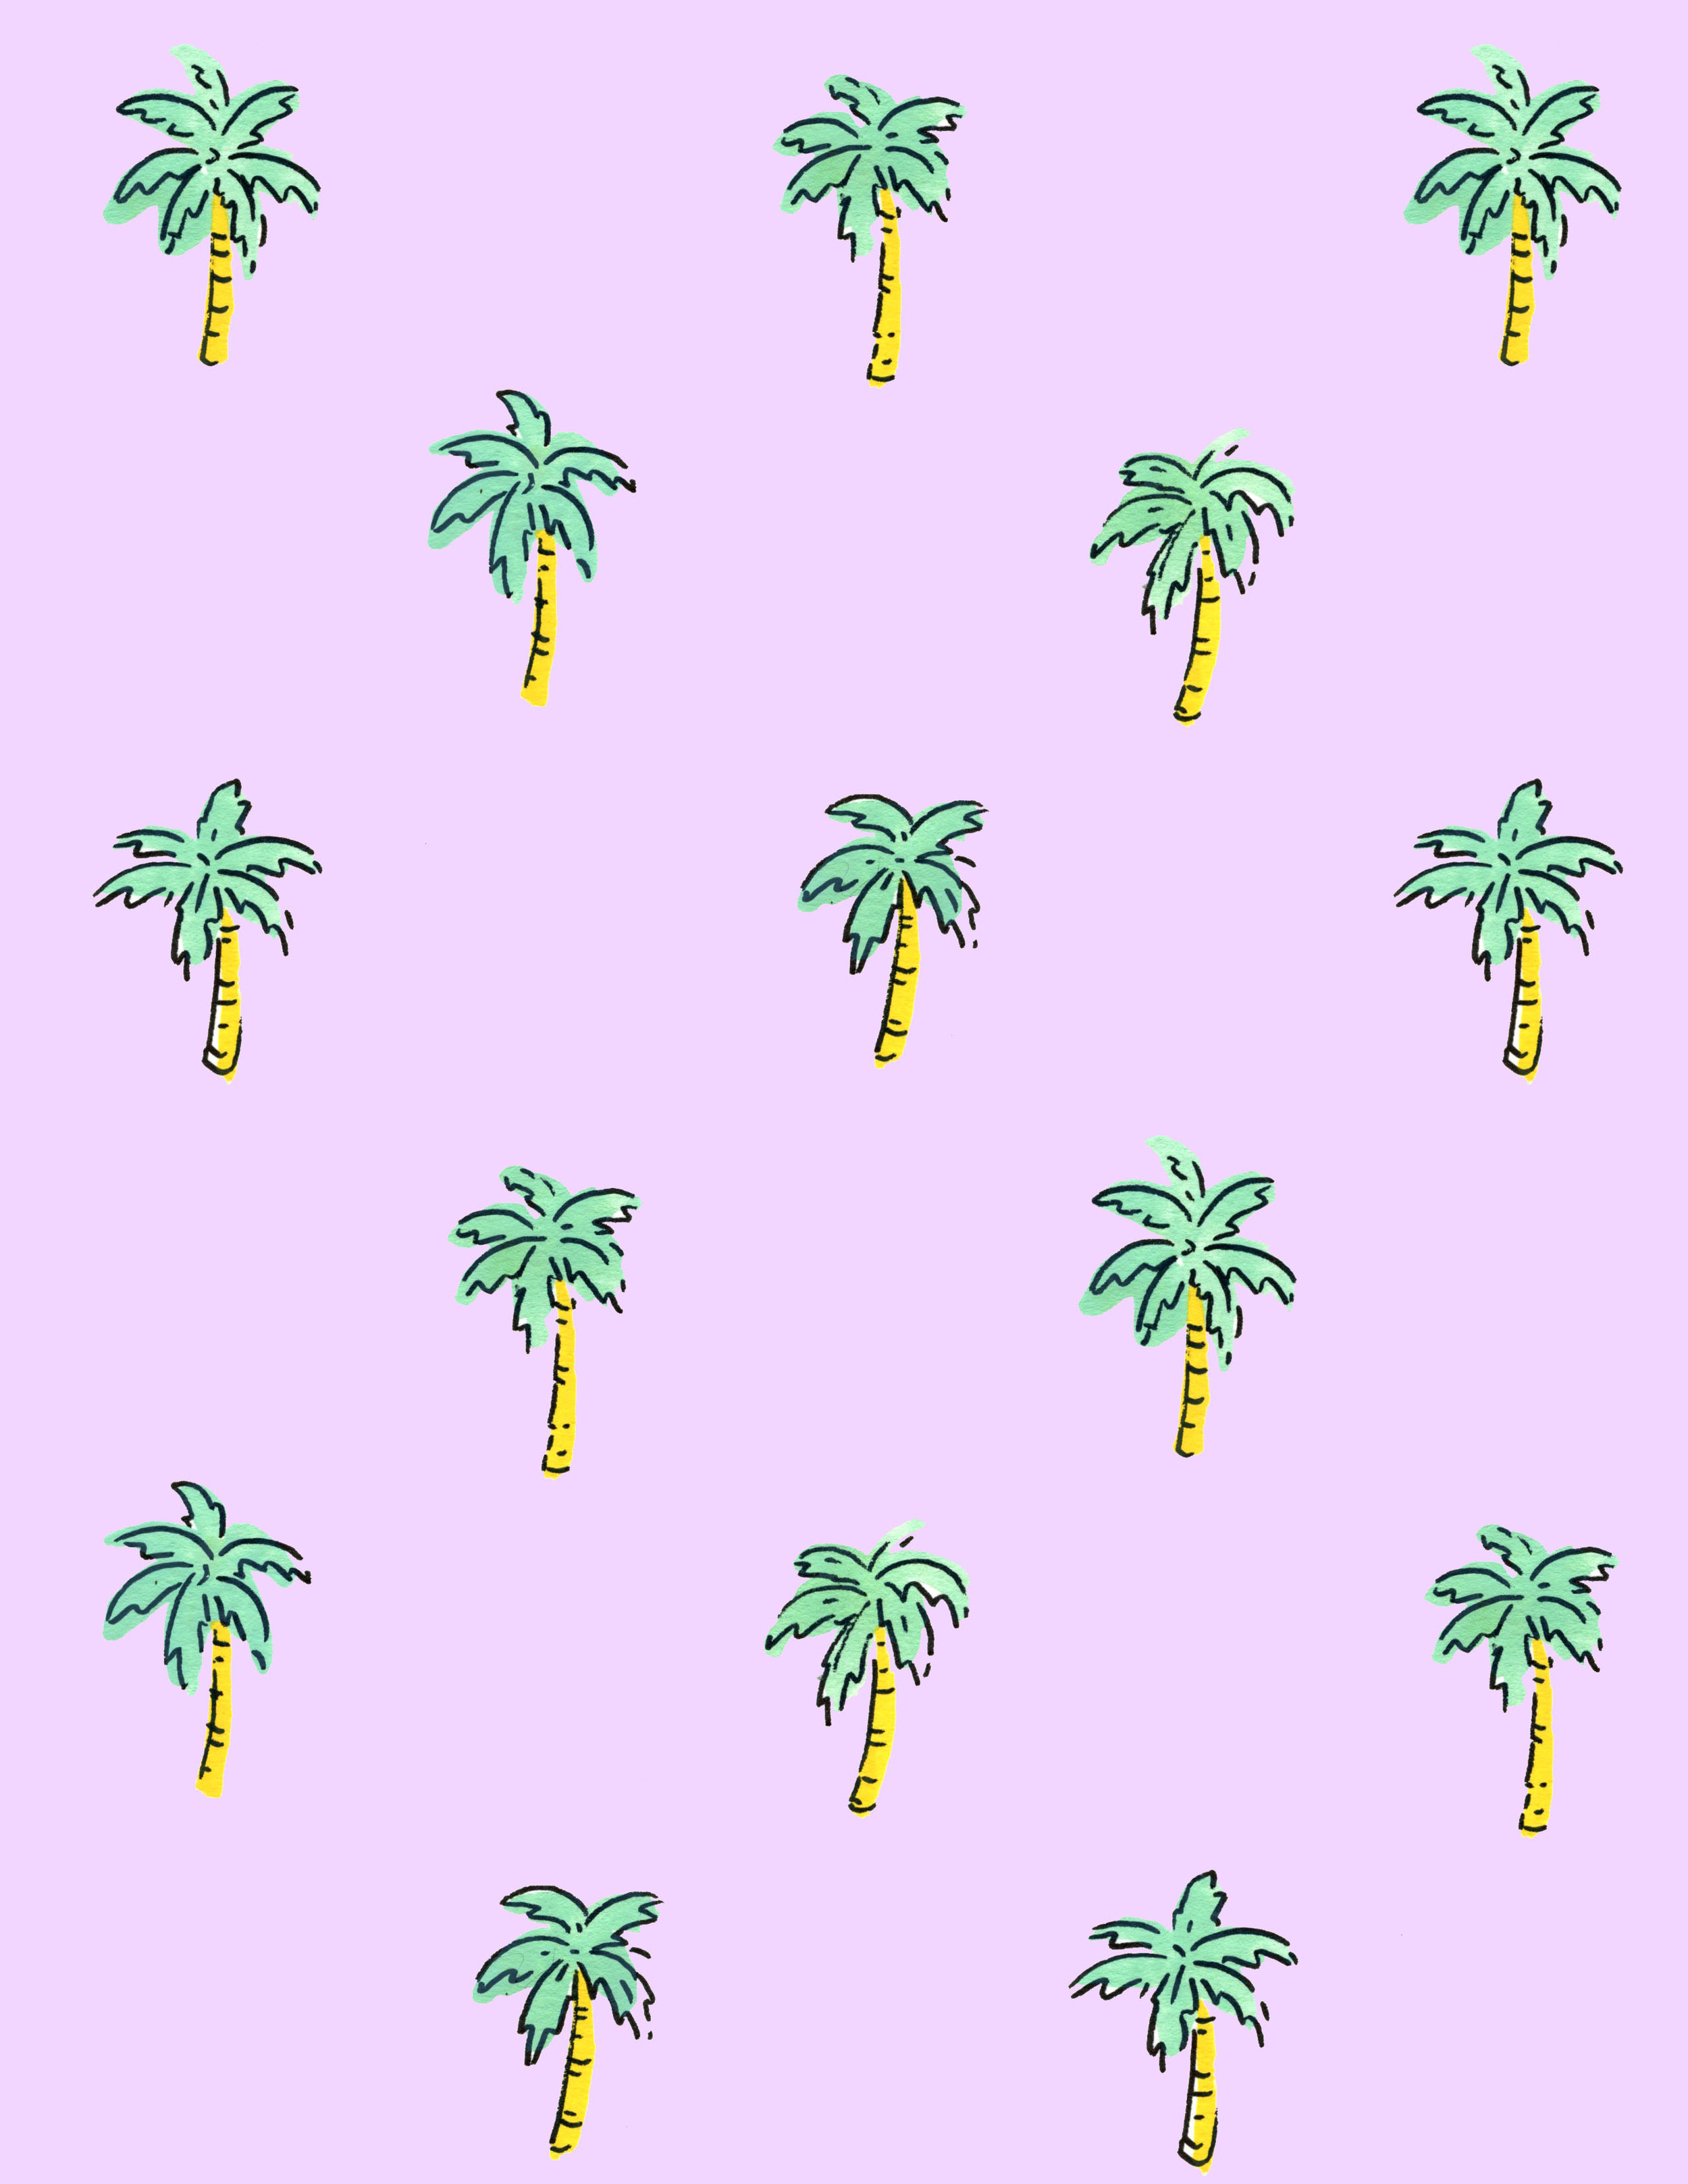 Cellrare-palms.jpg